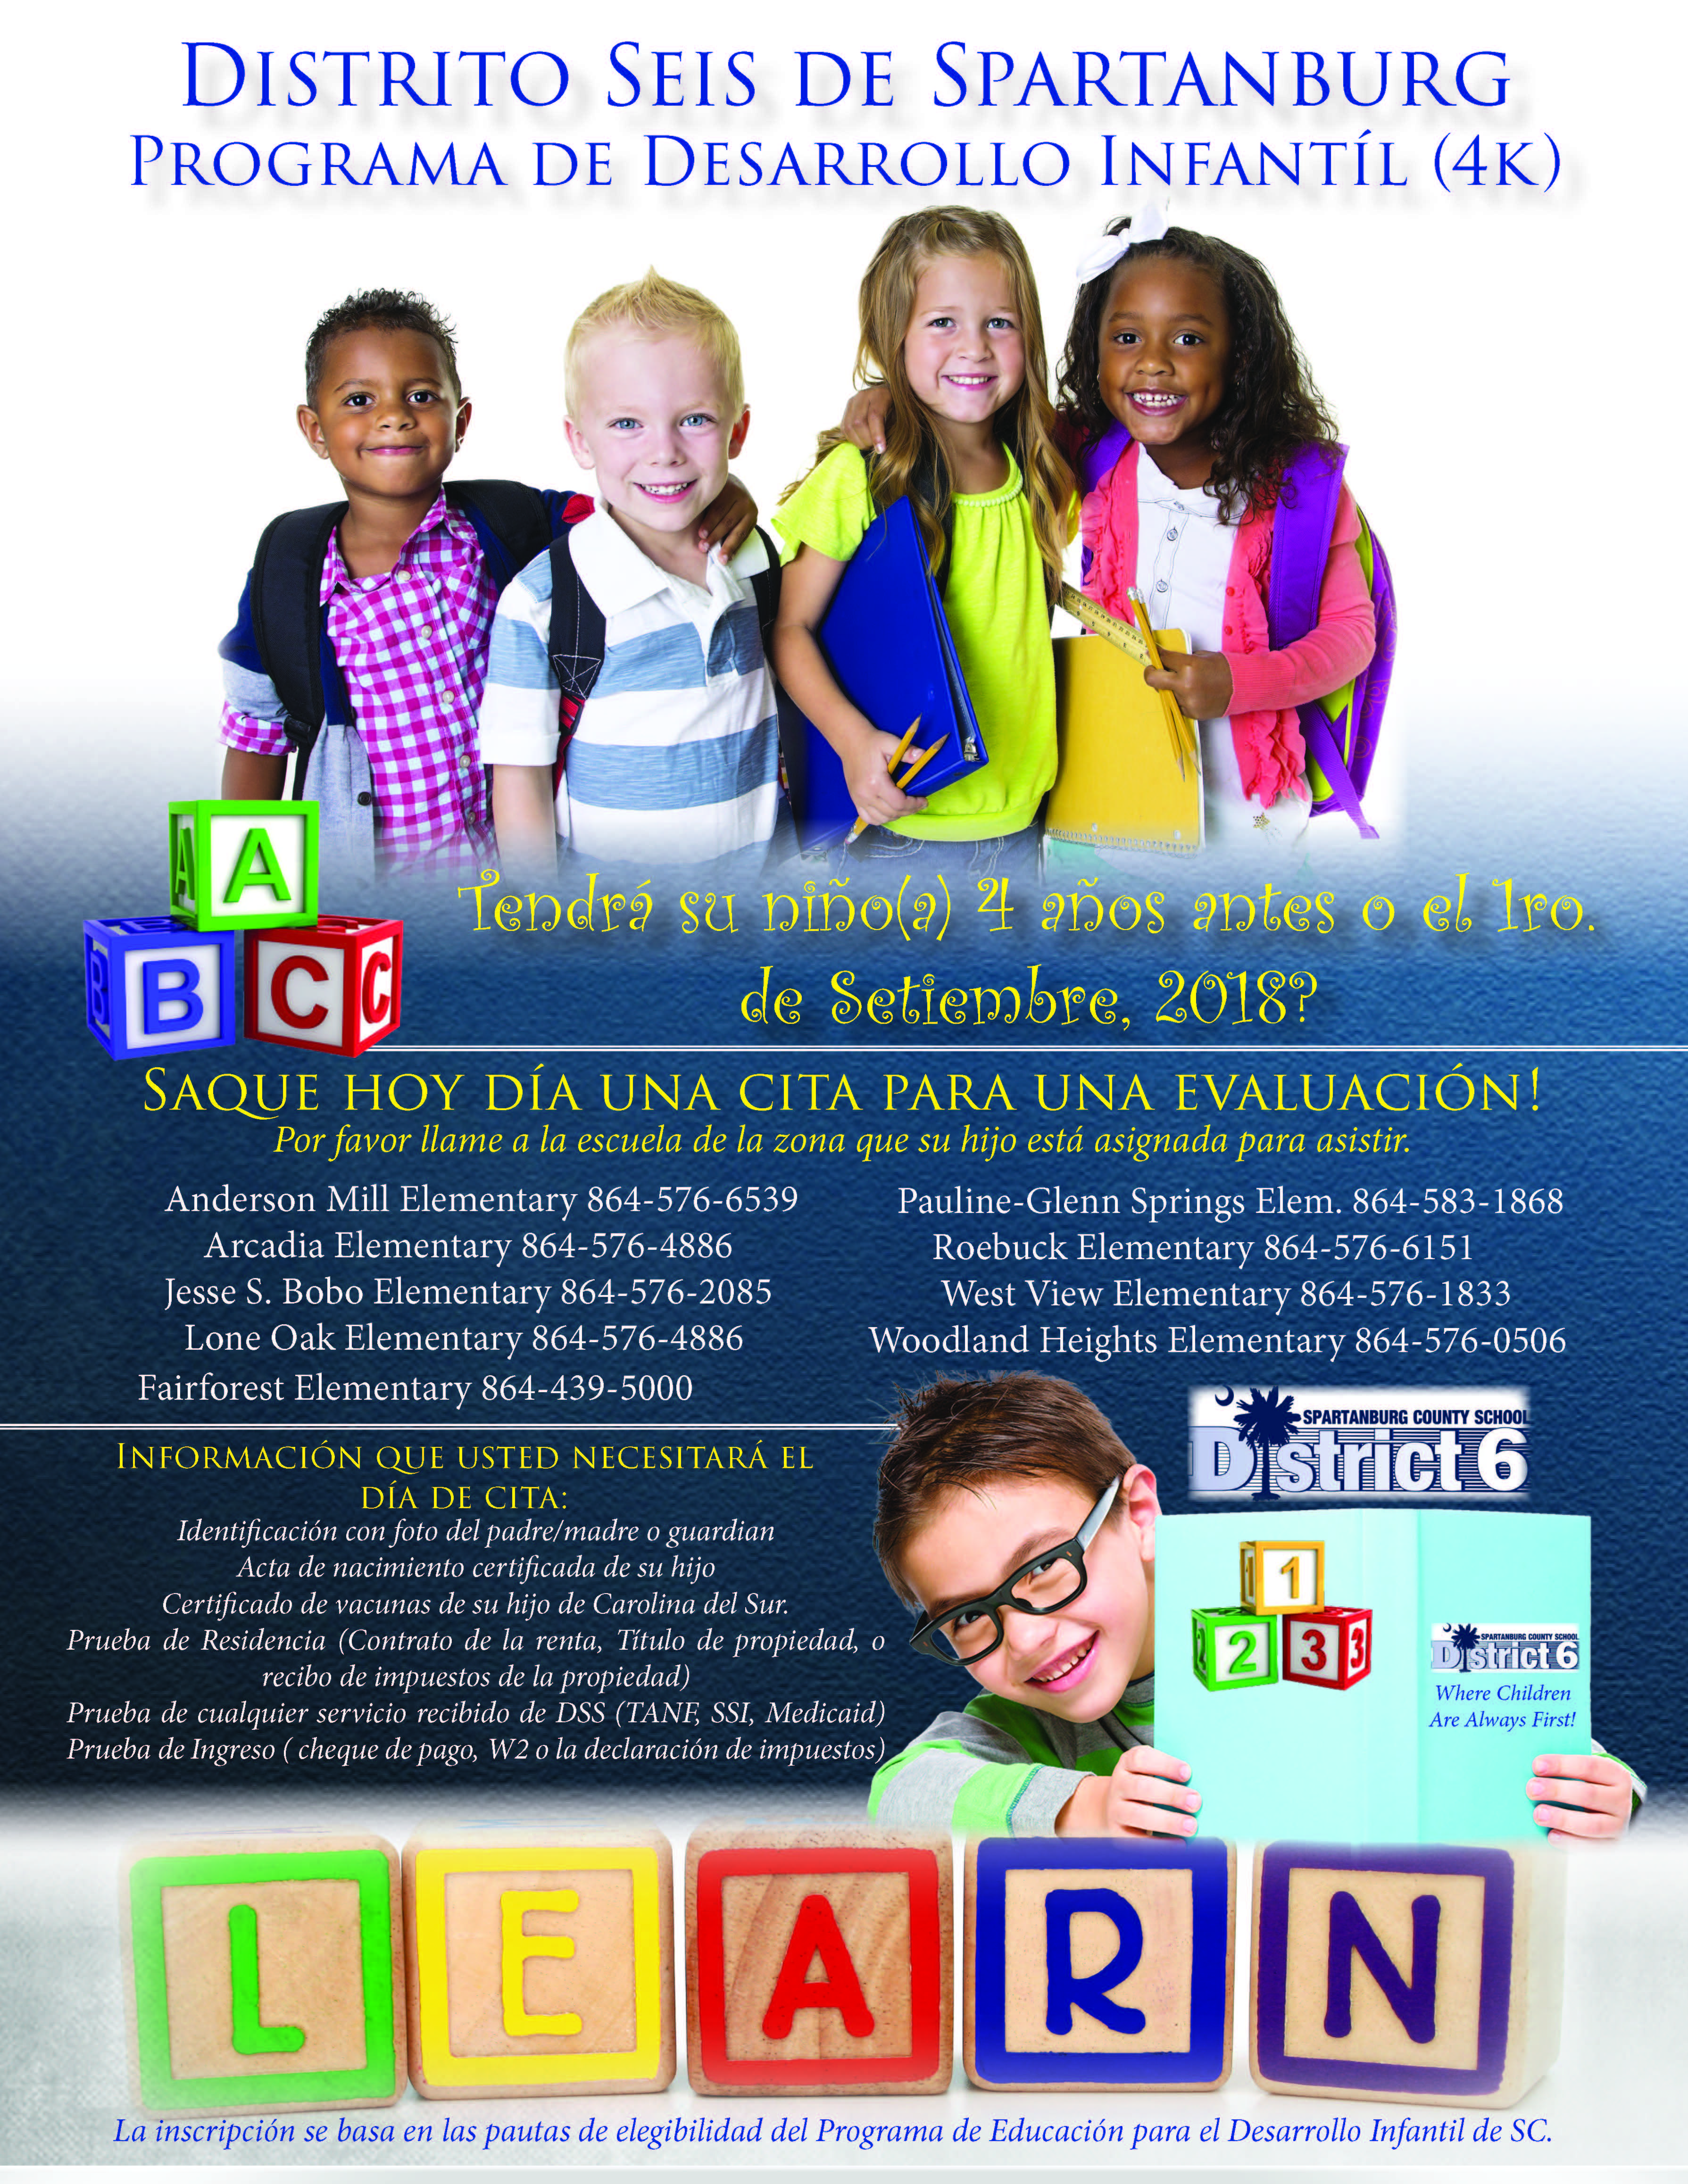 Flyer with pictures of kids. Flyer states will your child be four years old before September 1, 2018. If so then call the school the child is zoned for and schedule a 4k screening.  This is the Spanish version of the same flyer.